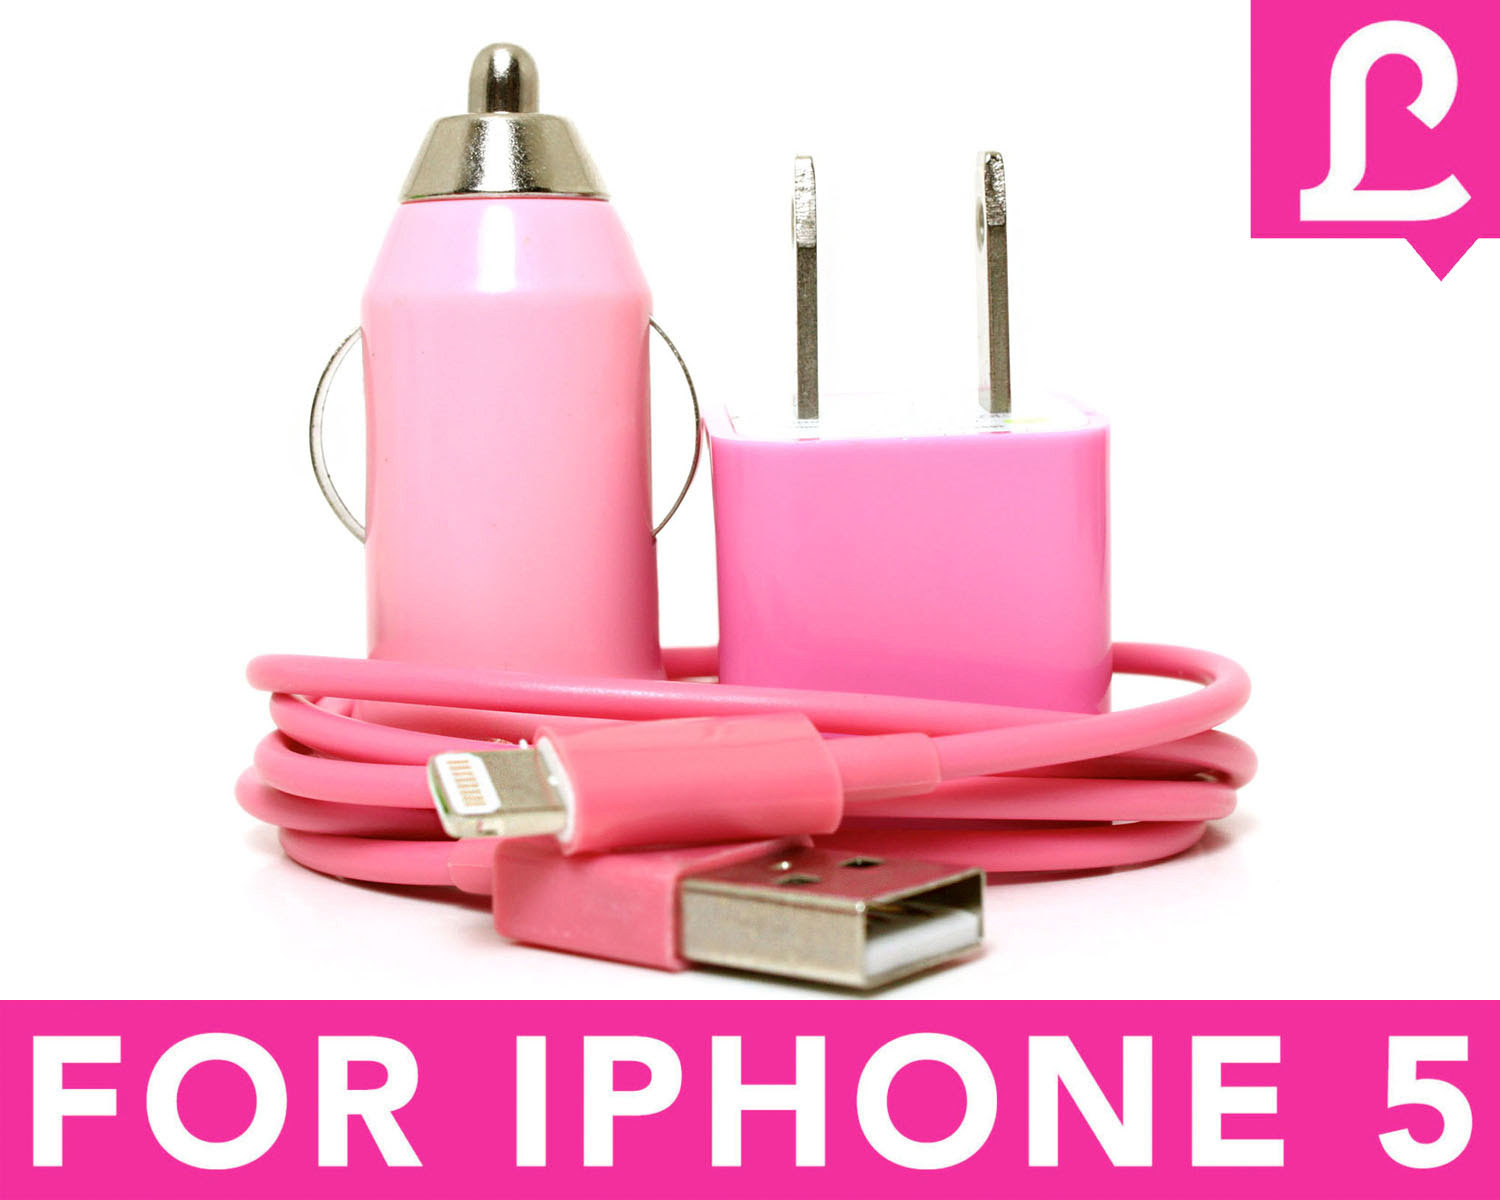 IPhone 5 Charger - 3-in1 Pink IPhone 5 Charger on Luulla